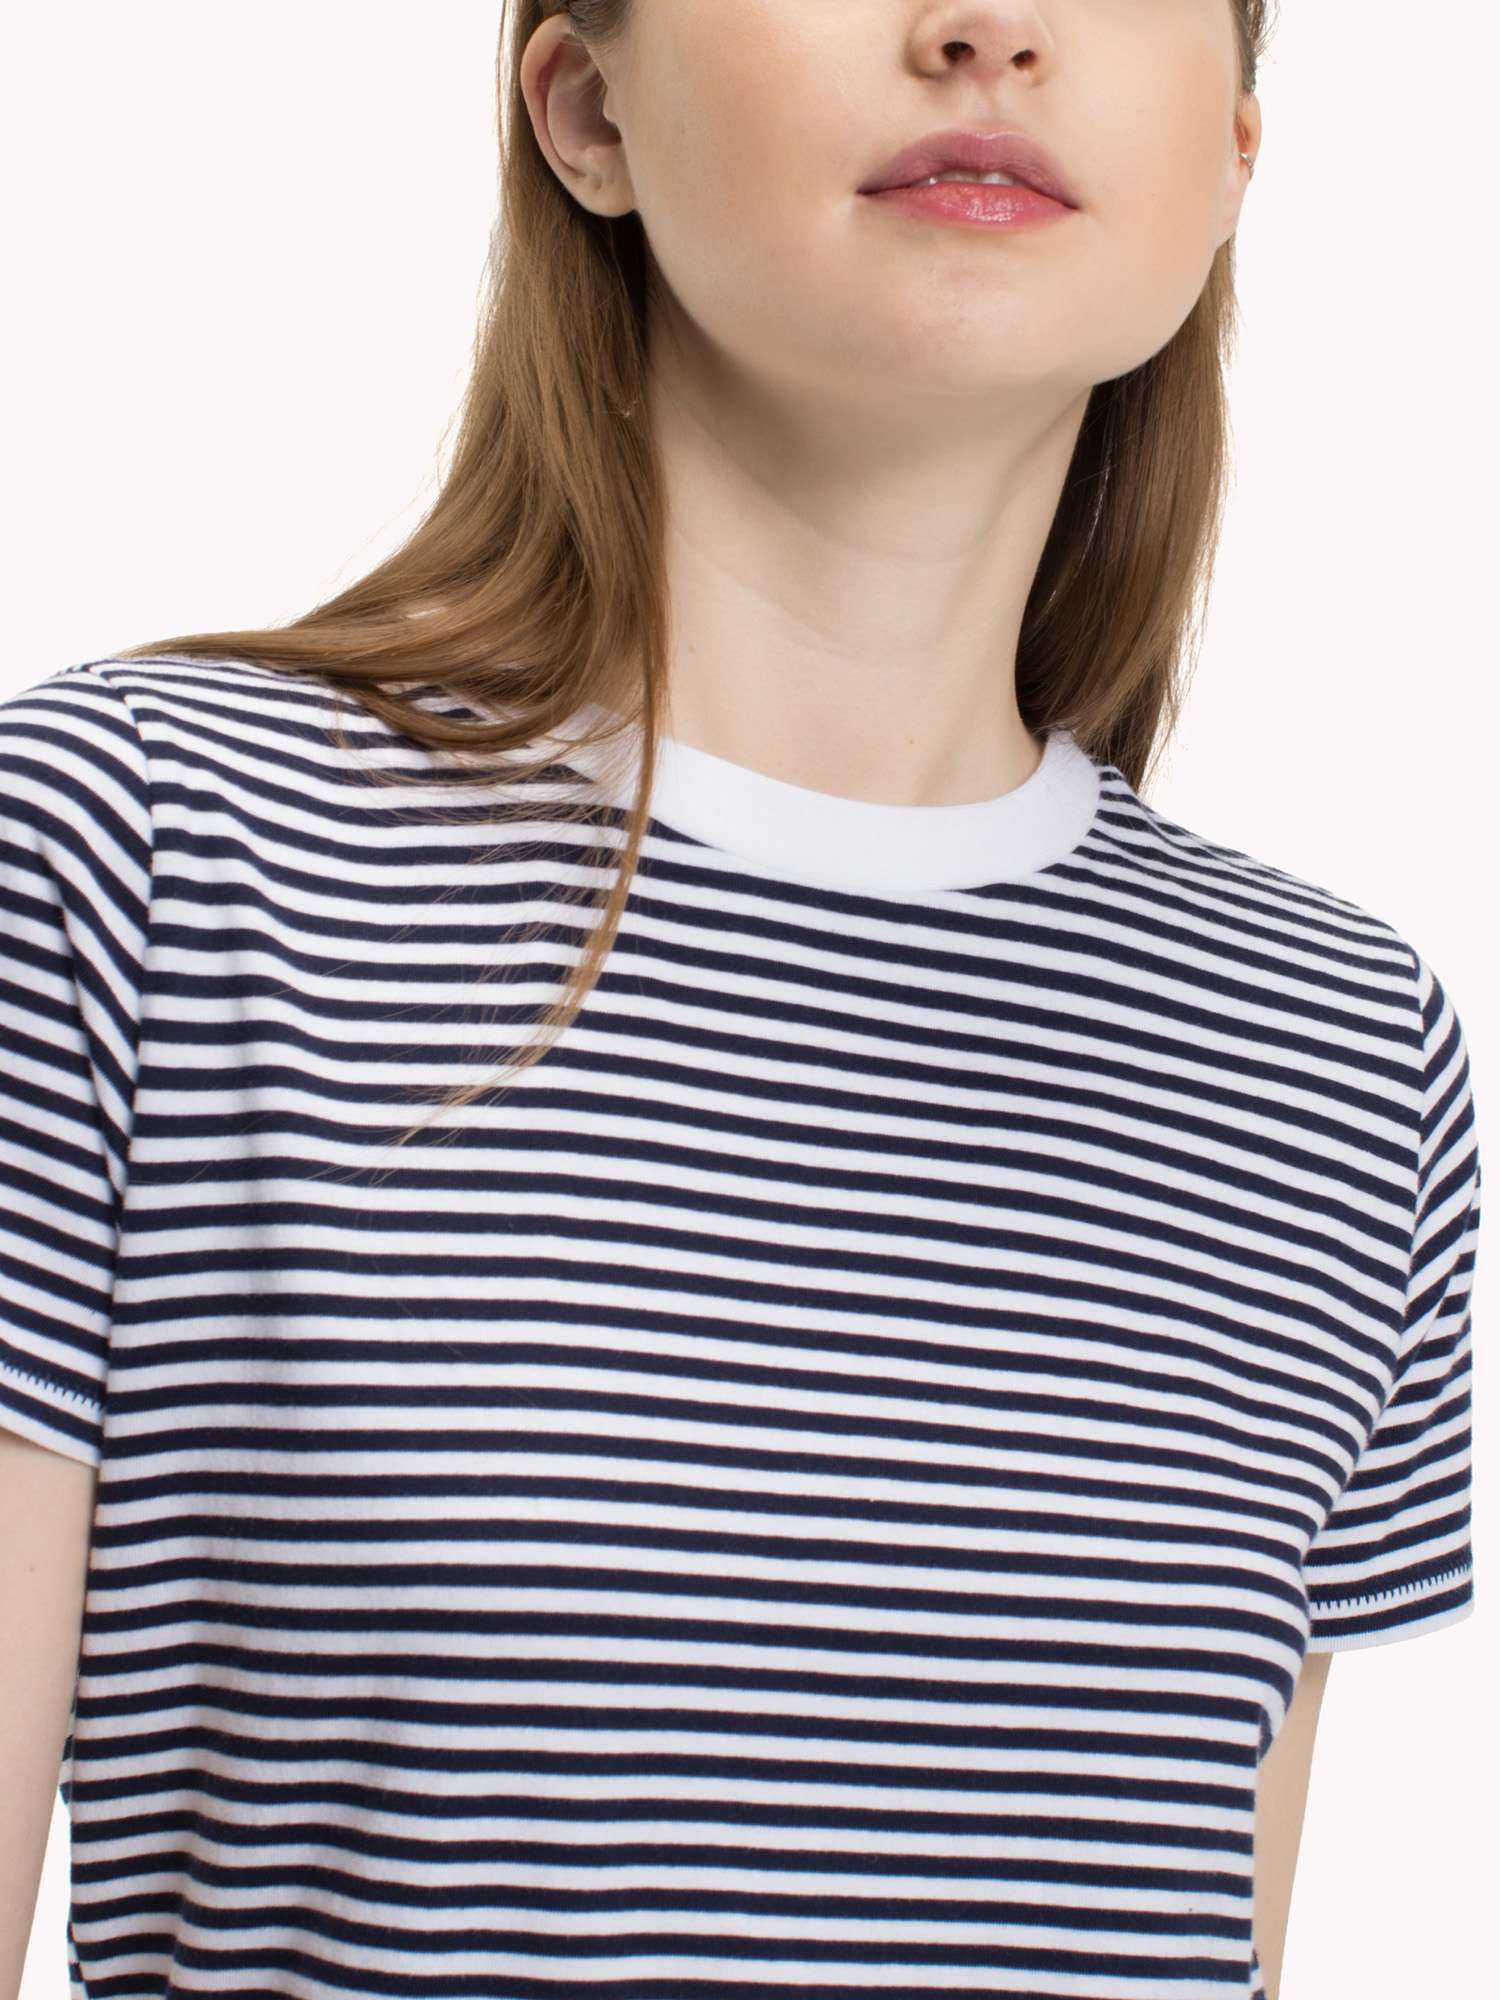 e8c93eef Tommy Tommy Hilfiger Jeans Tee Stripe O16TO at dwell.charistextme.com